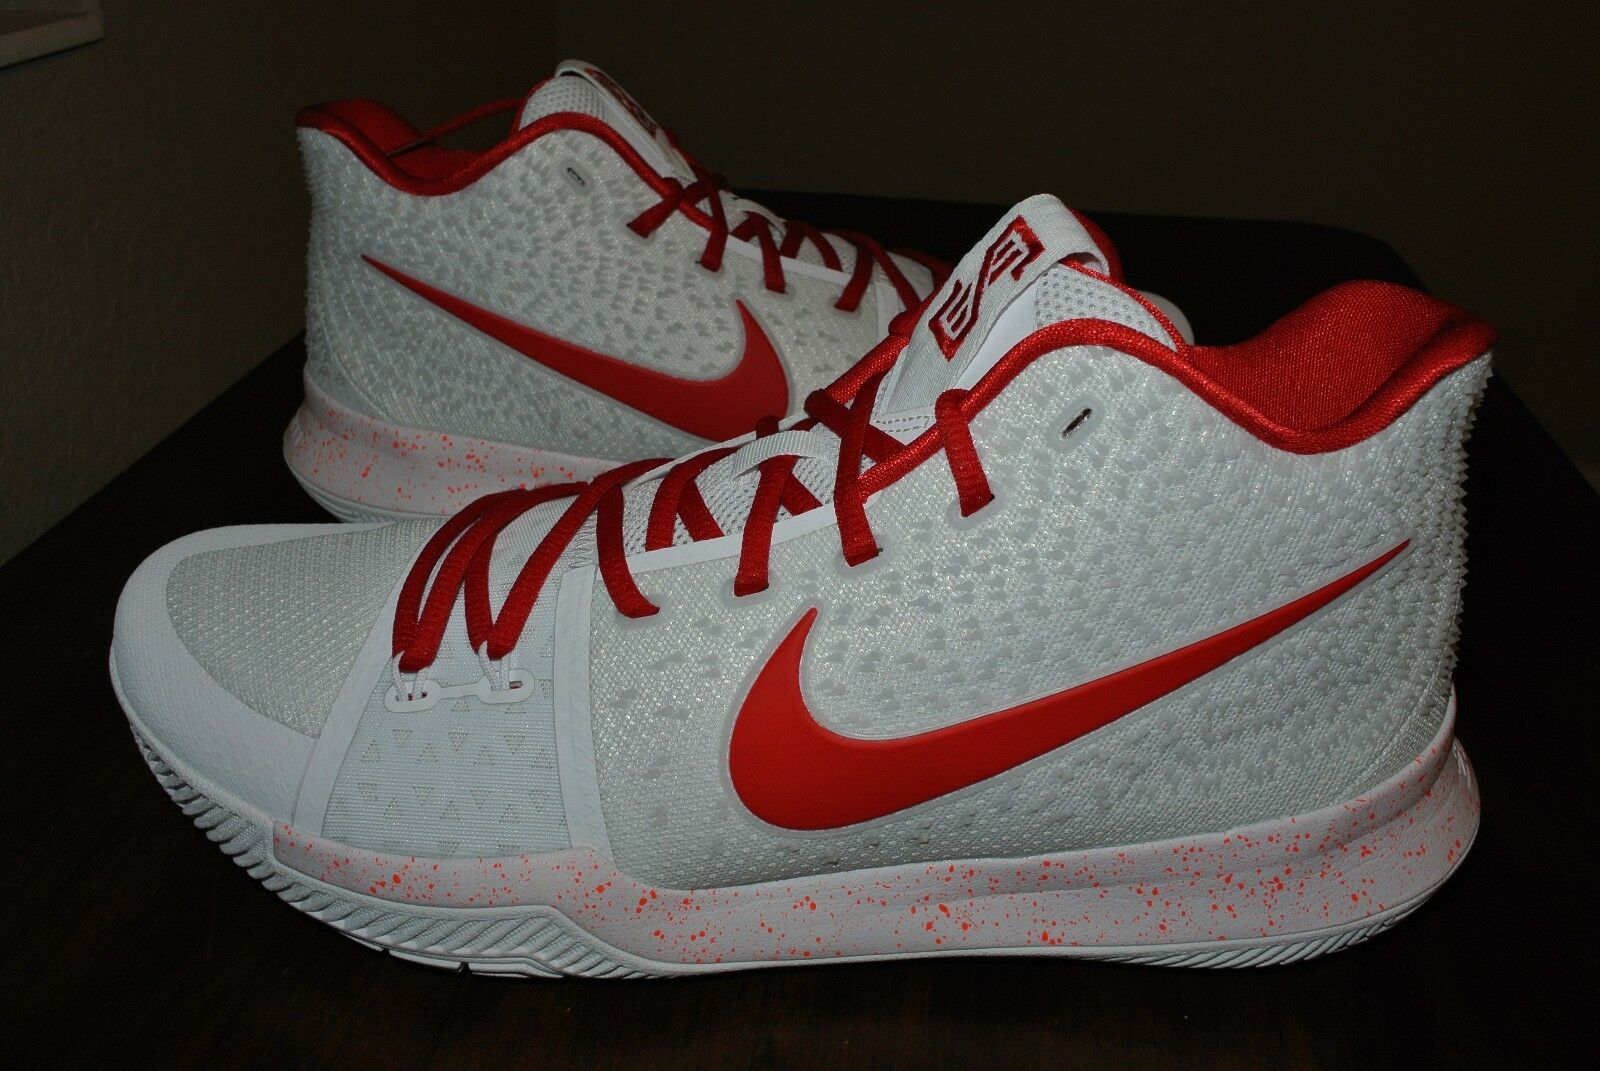 NIKE KYRIE 3 iD WHITE RED RARE AQ8767 991 US MENS SHOE SIZE 13.5 The latest discount shoes for men and women